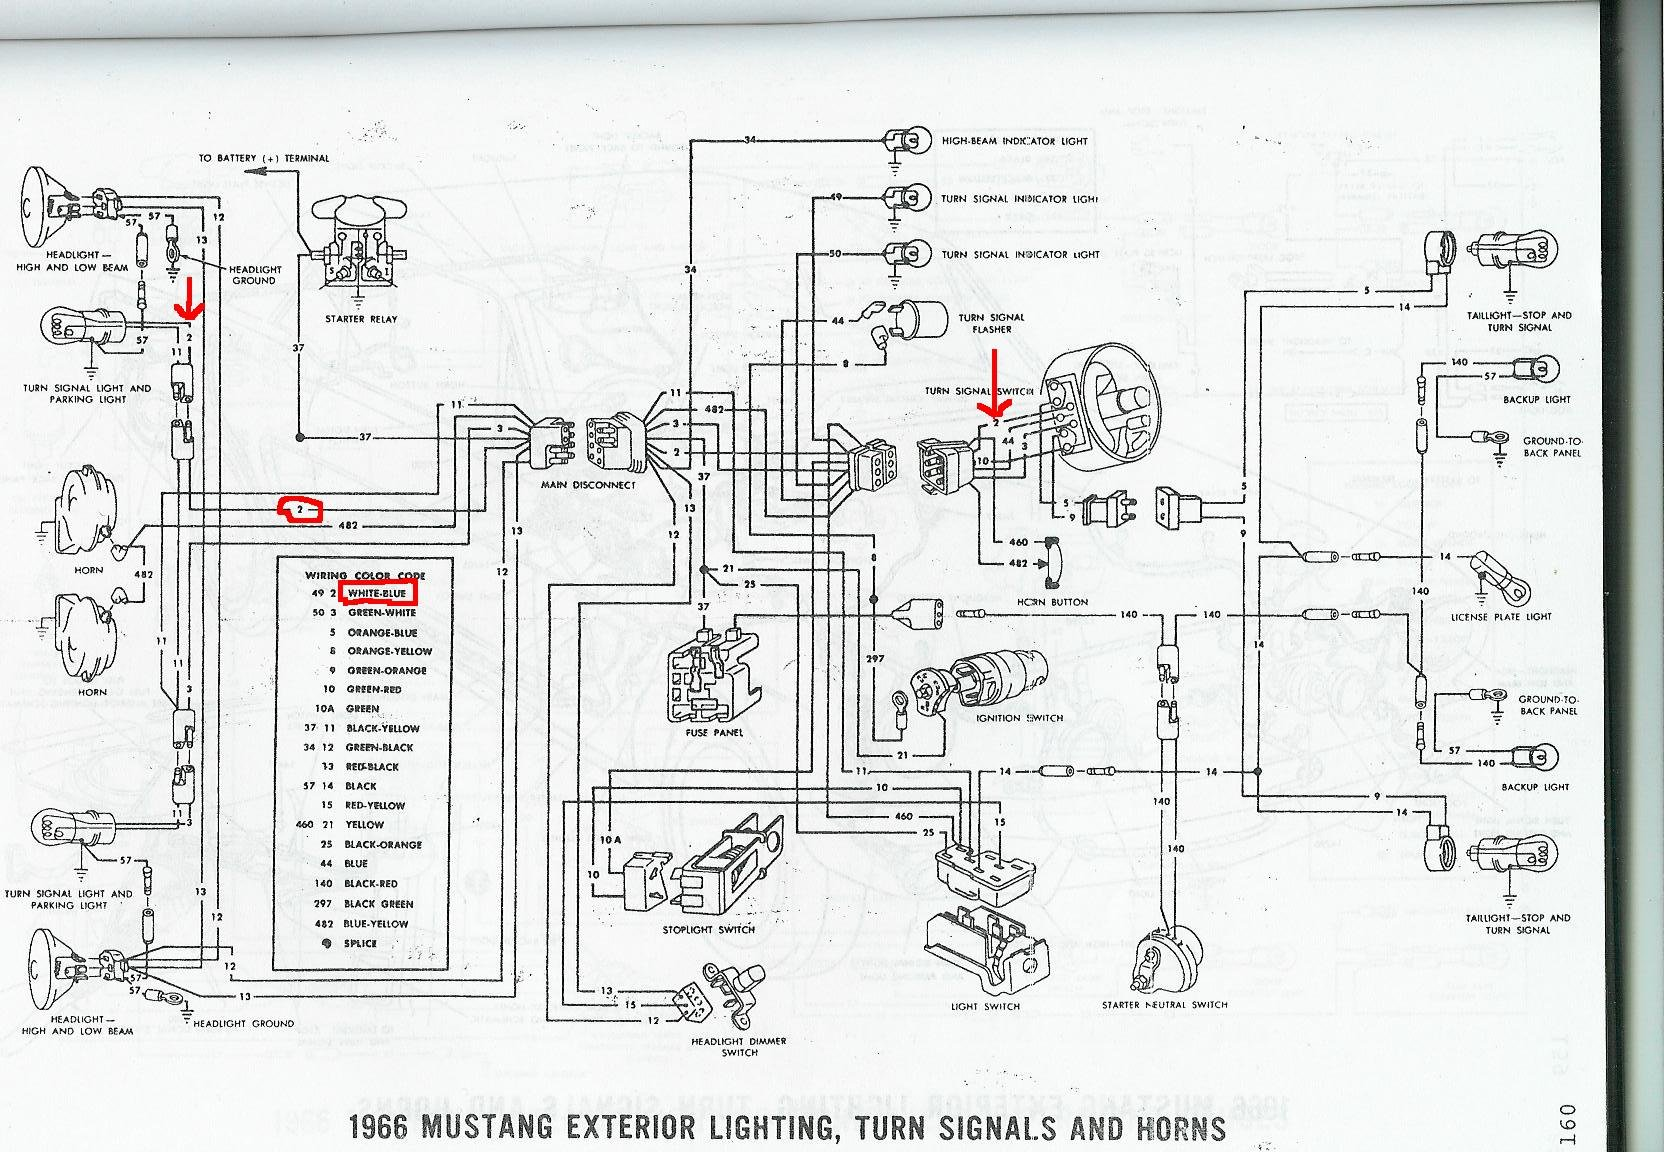 1966 Mustang Exterior Light Wiring Diagram Trusted 1969 Corvette Lighting Enthusiast Diagrams U2022 Nova Turn Signal